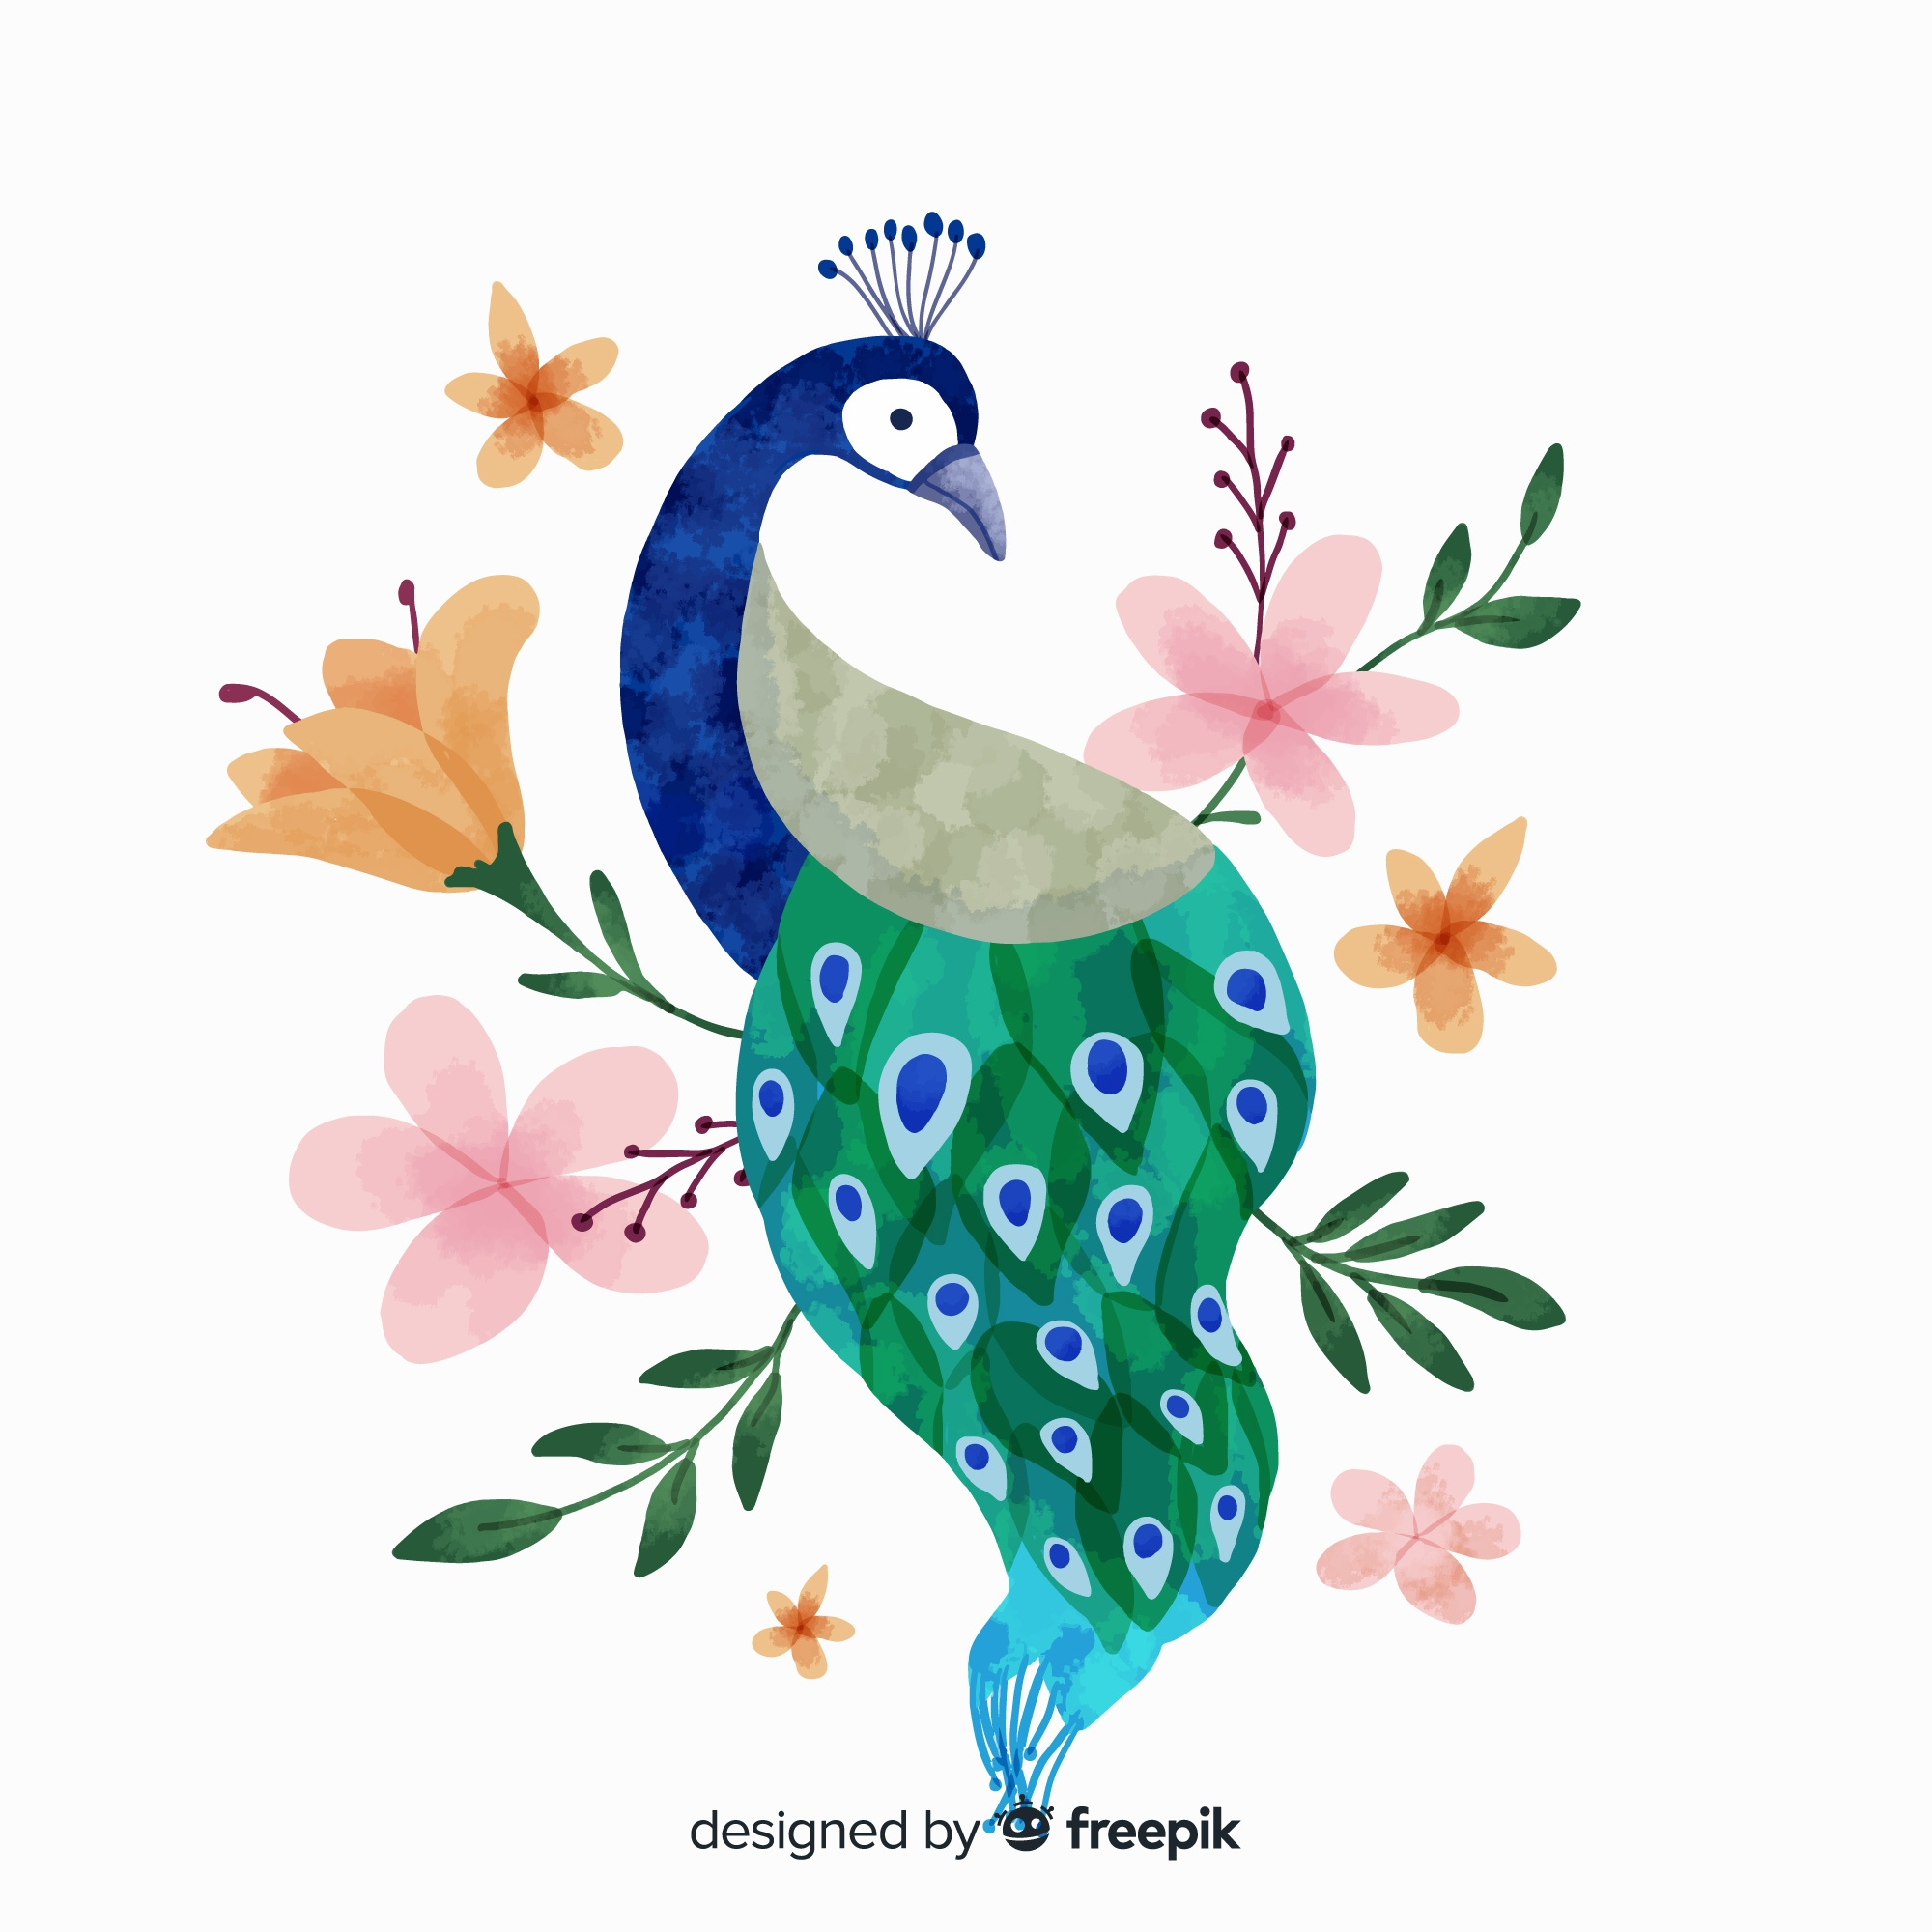 Peacock in watercolor style